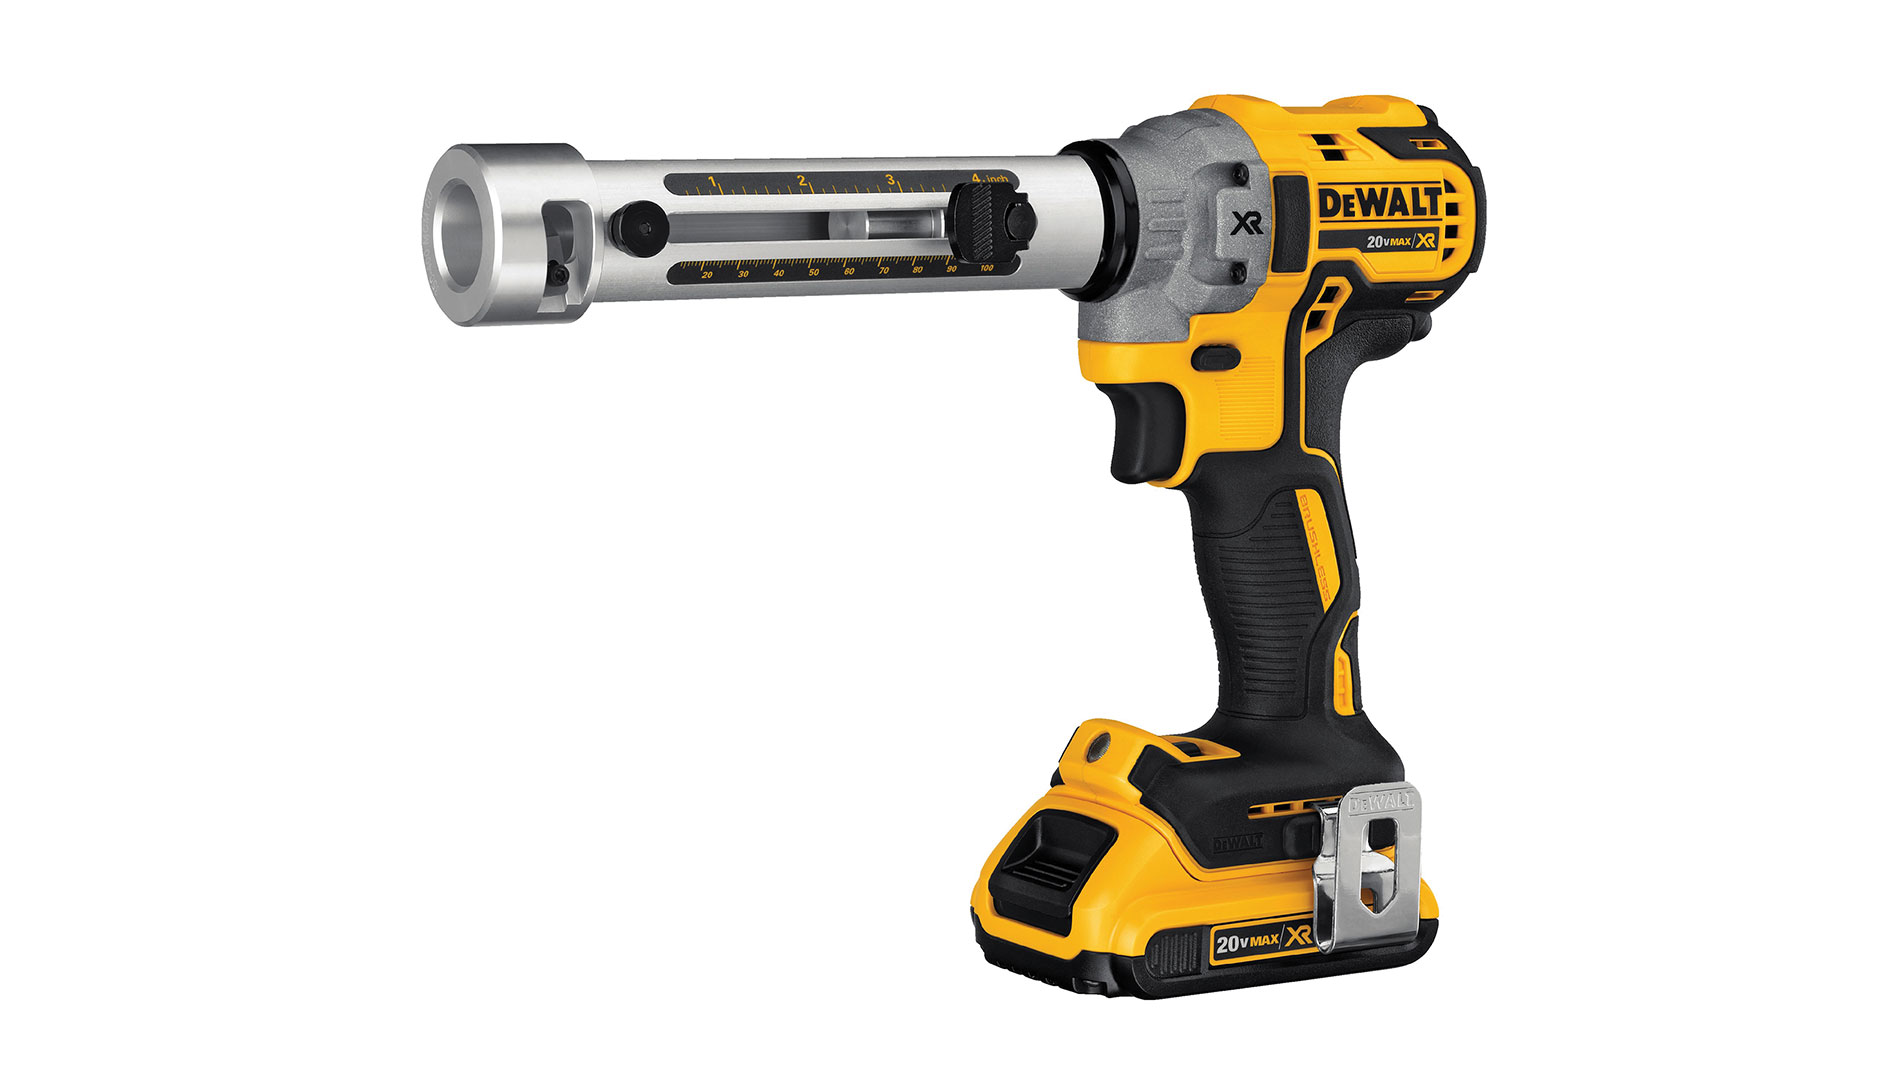 DeWalt 20V cordless wire stripper.